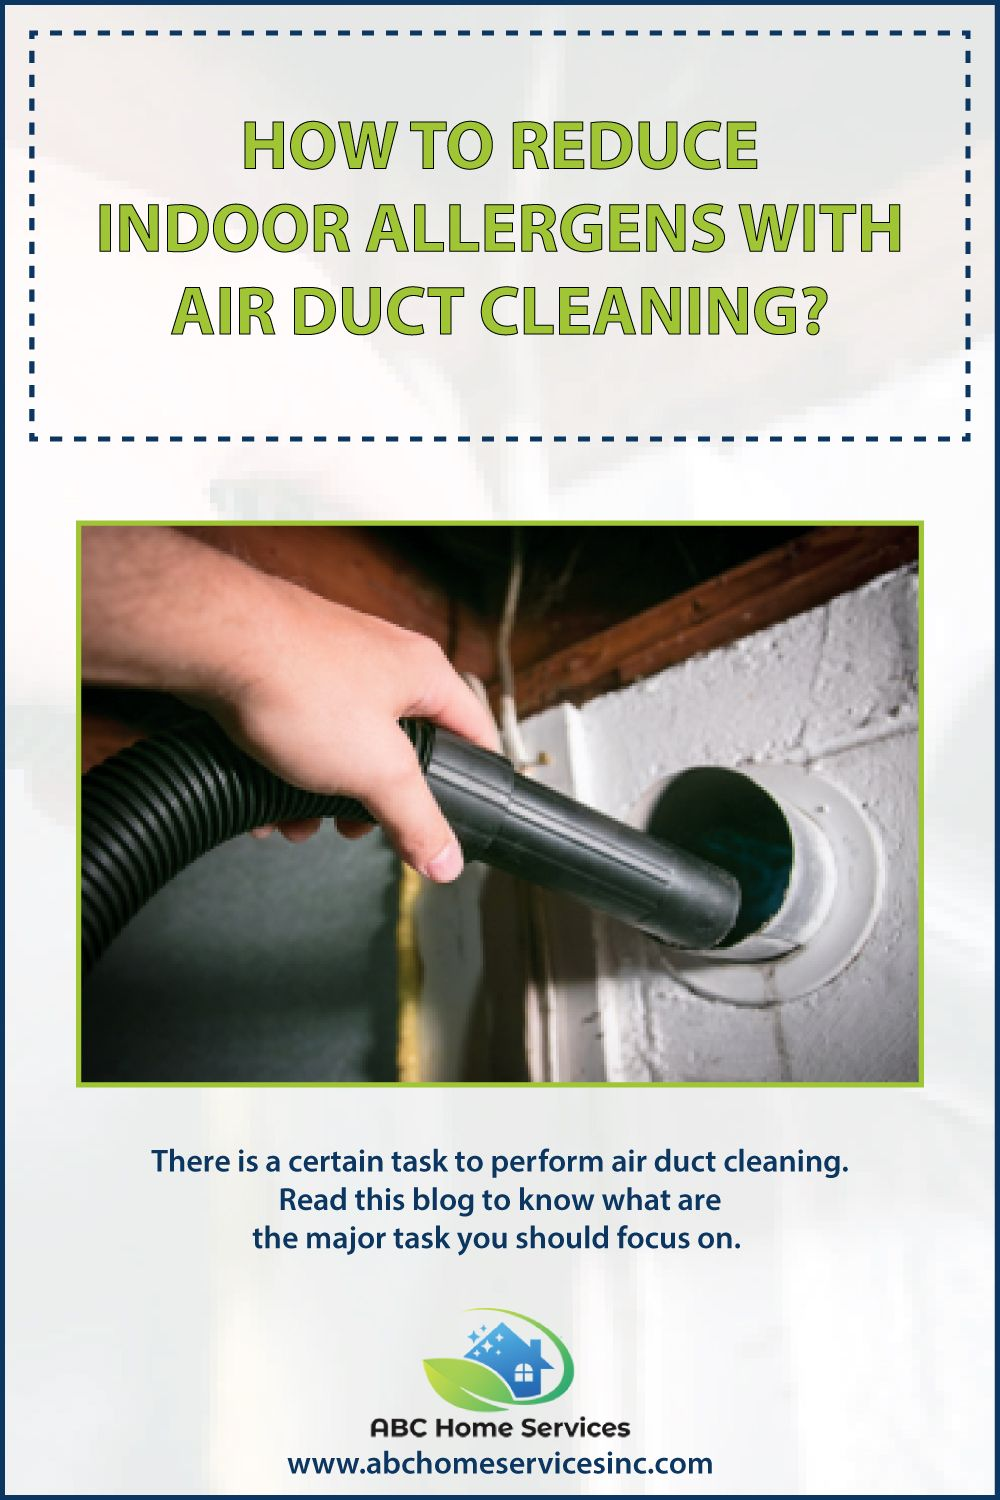 How To Reduce Indoor Allergens with Air Duct Cleaning? in